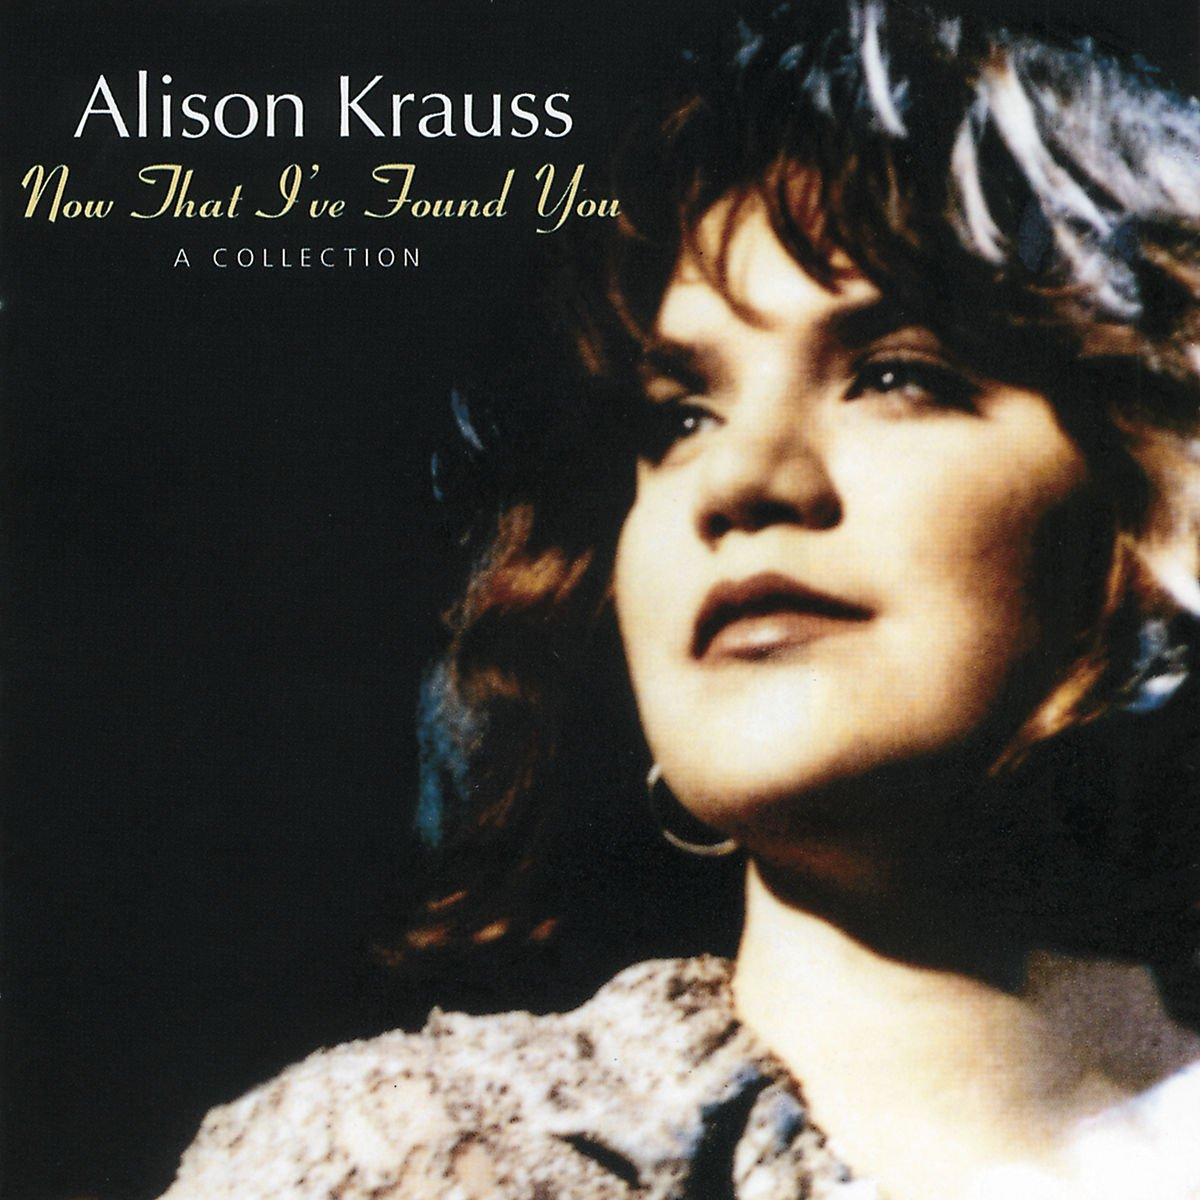 Now That I've Found You: A Collection: Amazon.co.uk: Music